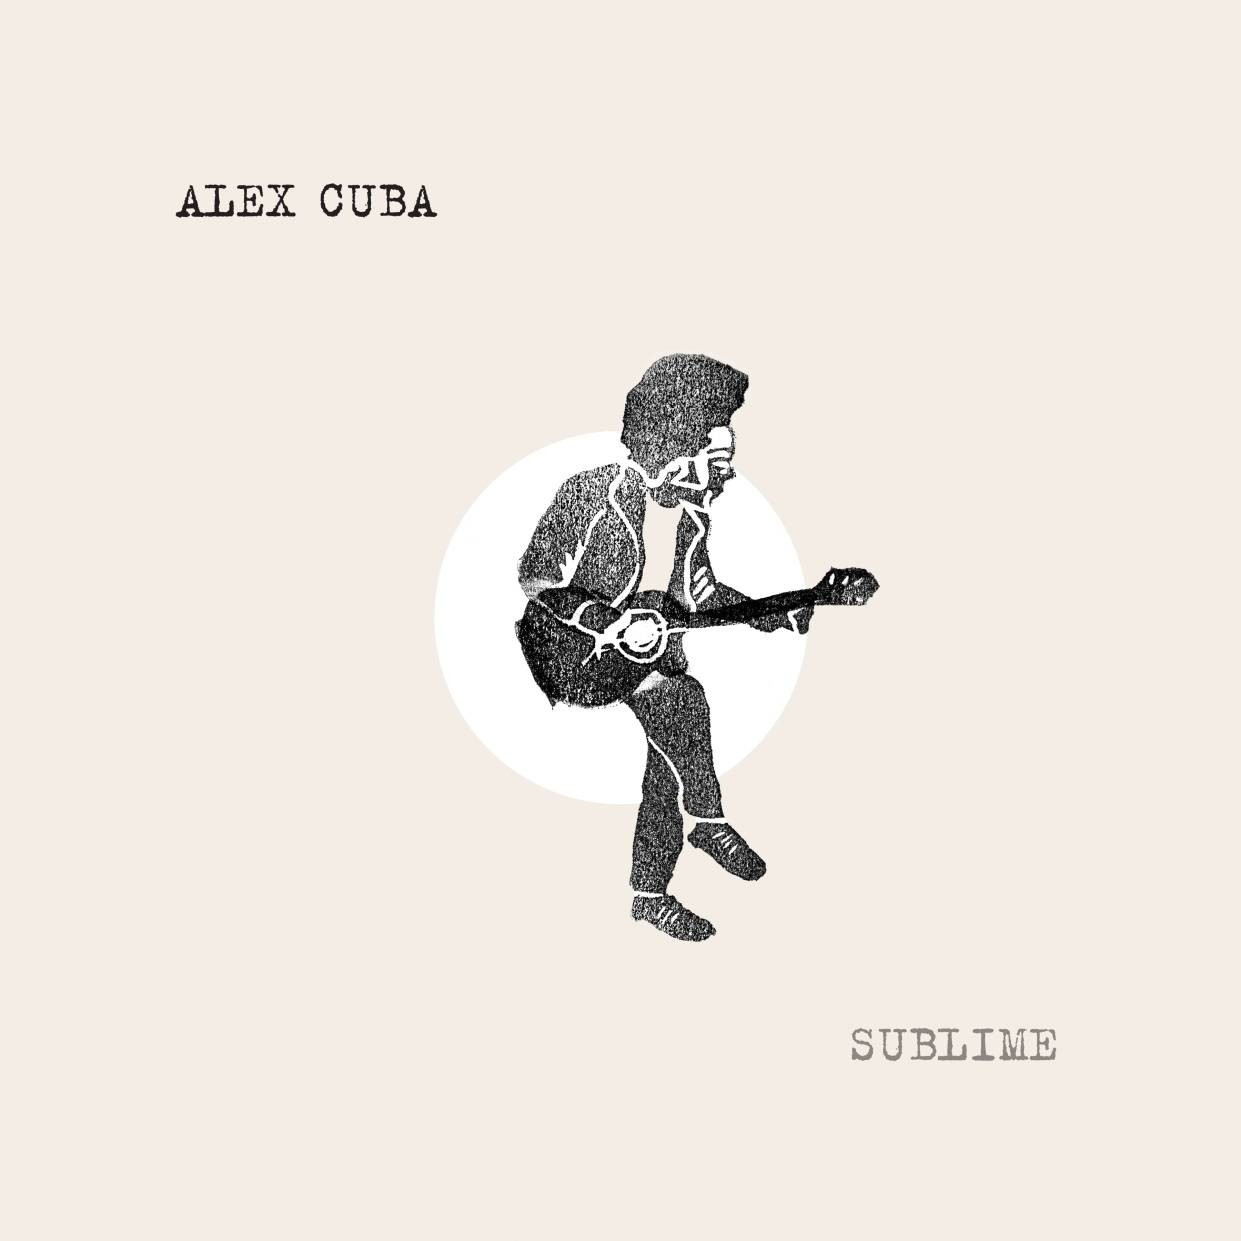 Cover of the album Sublime, by Alex Cuba. Original art by Erin Candela, cover designed by Simon Evers.